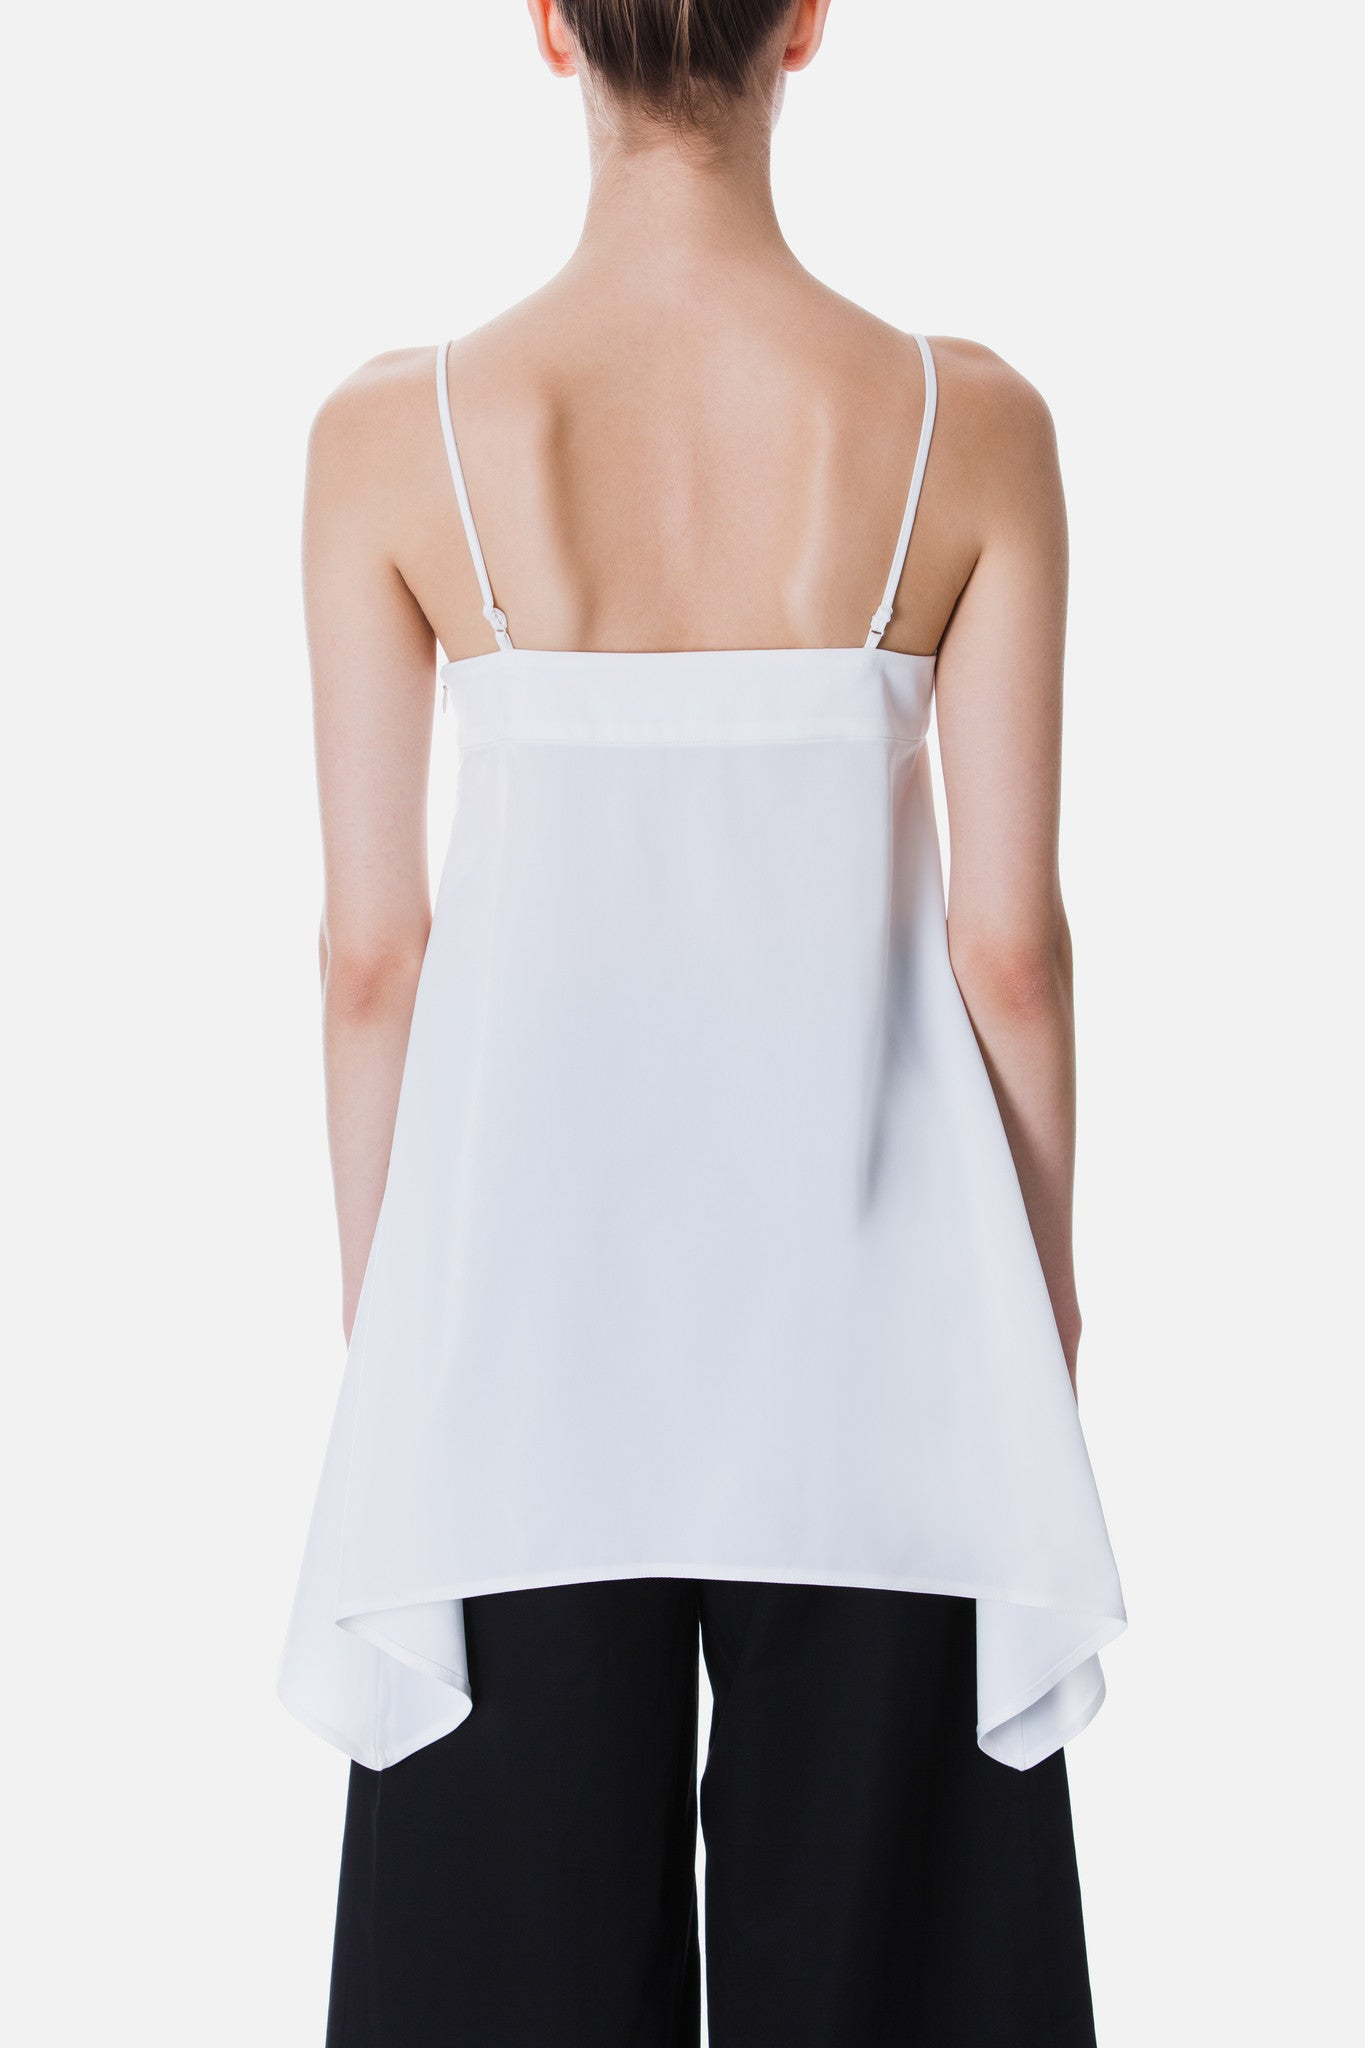 CAMISOLE TOP WITH SIDE DRAPE